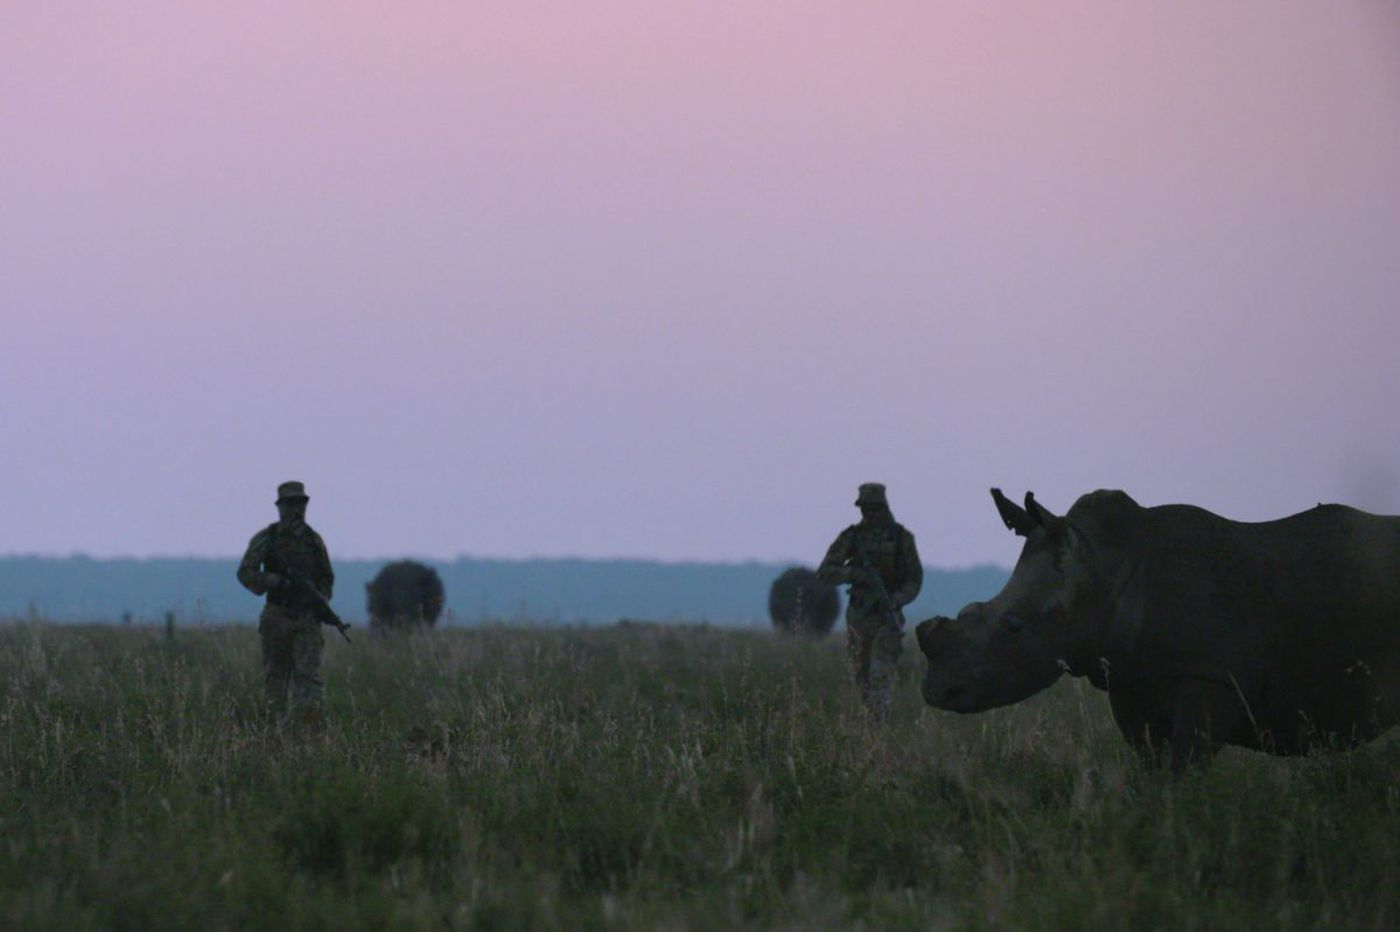 Can hunting lions and sawing off rhino horns save the species?